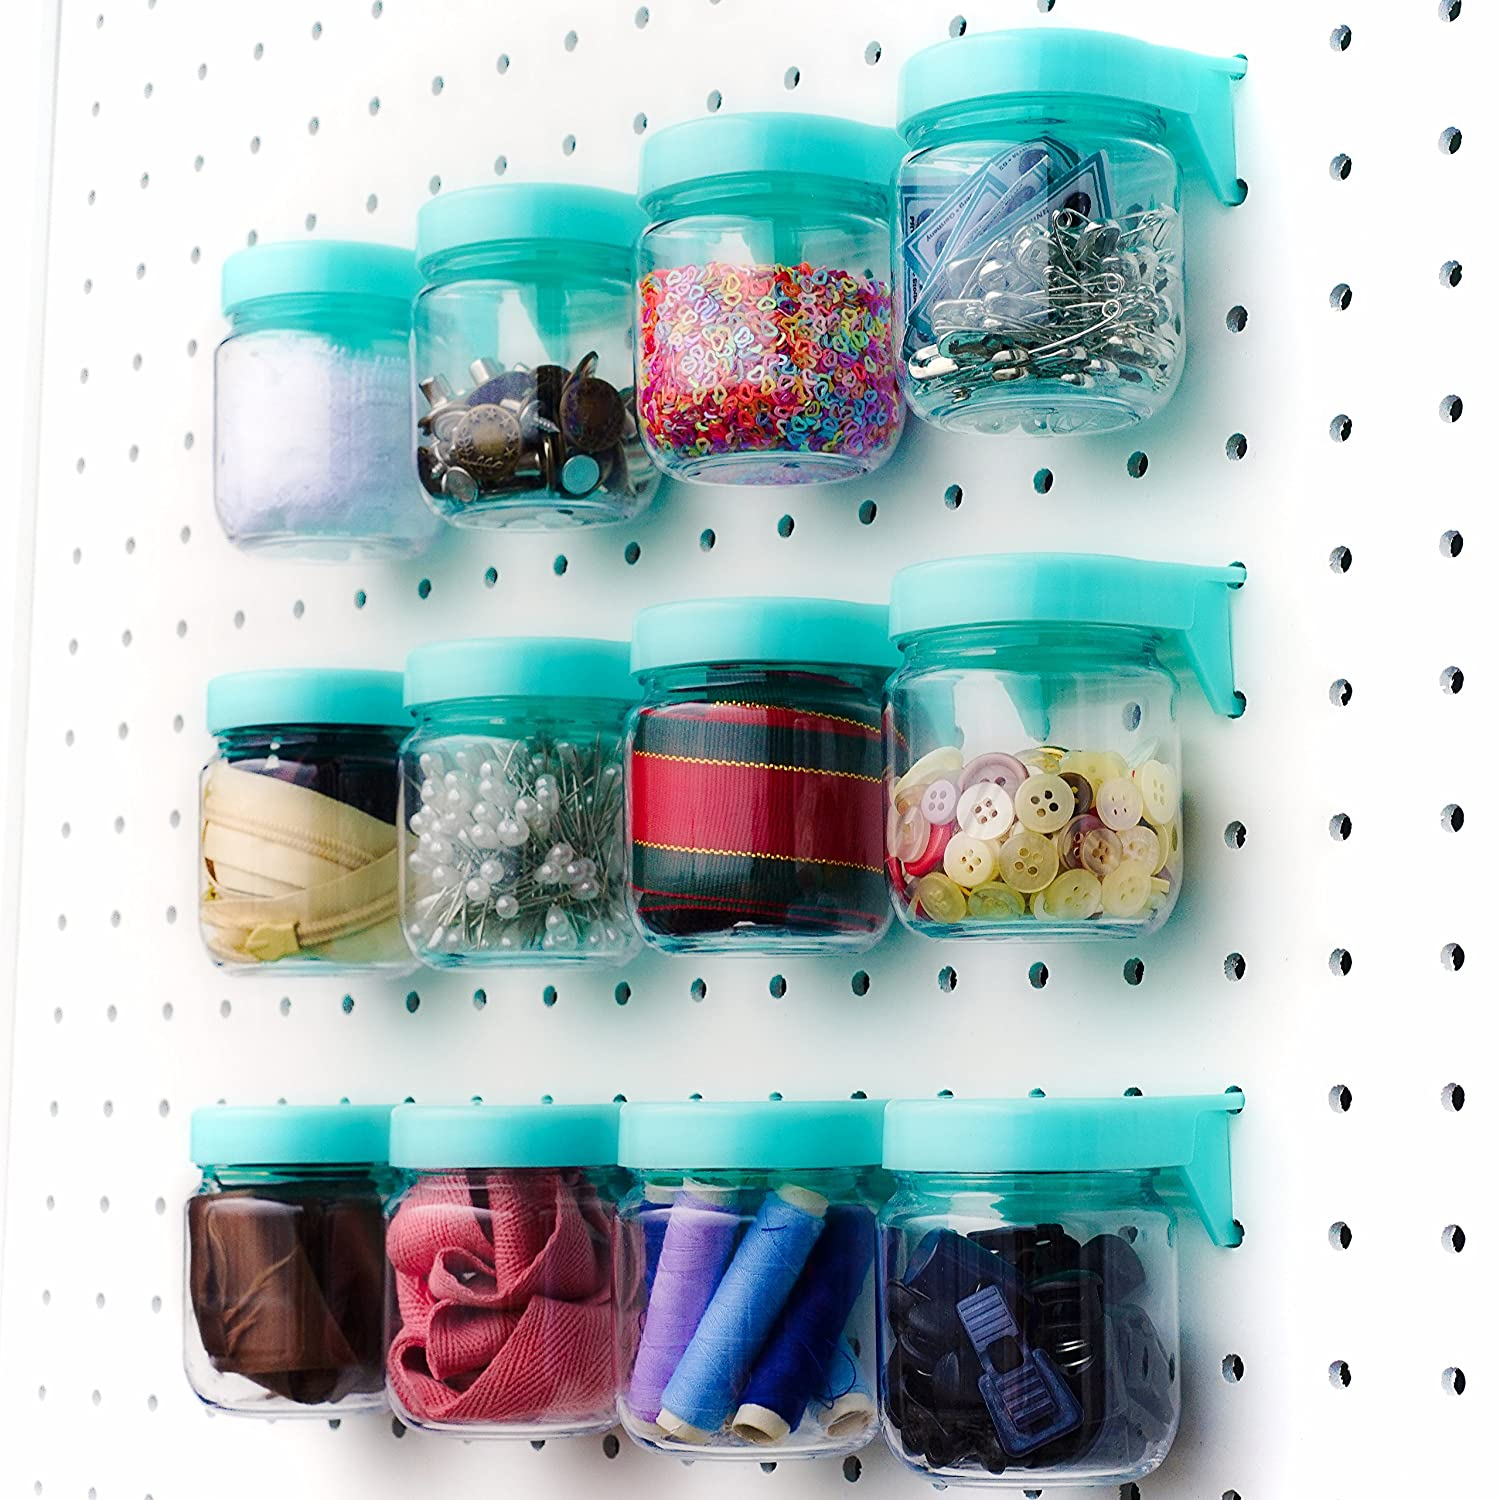 Crush /& Impact Resistant Plastic Pegboard Jars Peg Board Attachments for Craft Set of 6 Tall Pegboard Accessories Organizer Storage Jars Large Size 2 x 4 Blue Sewing /& Garage Storage